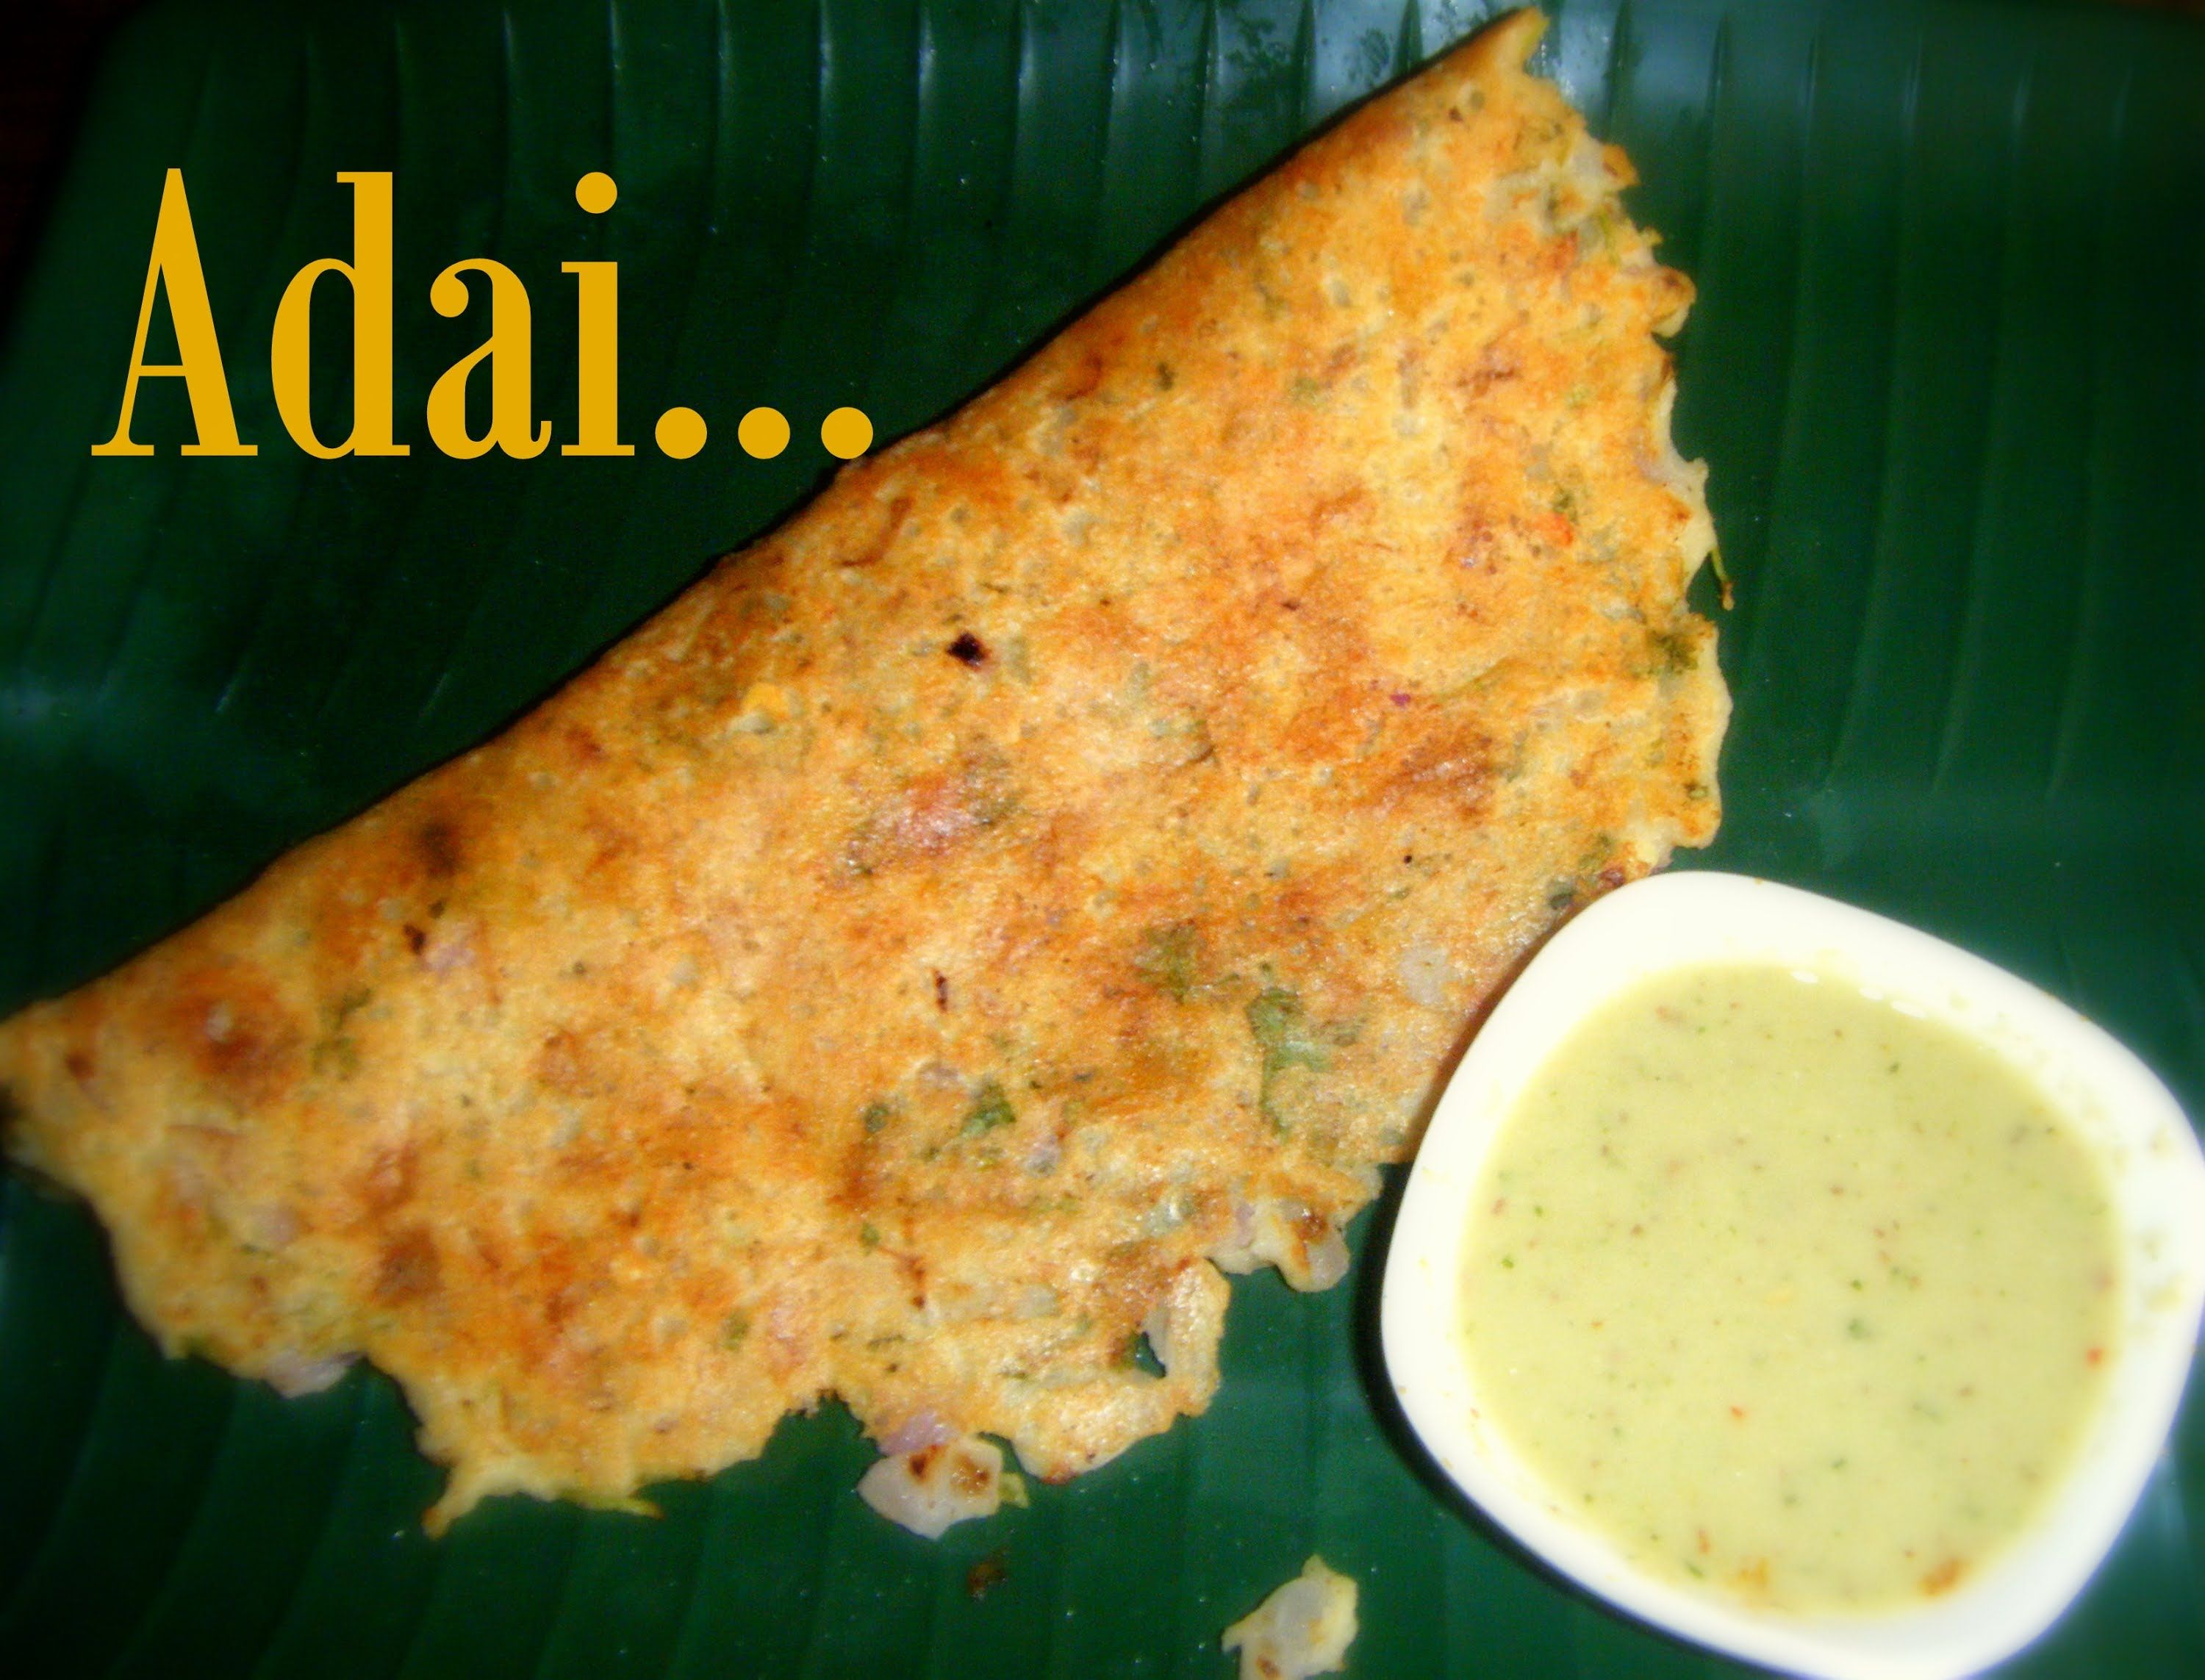 A food blog with Indian vegetarian recipes clearly